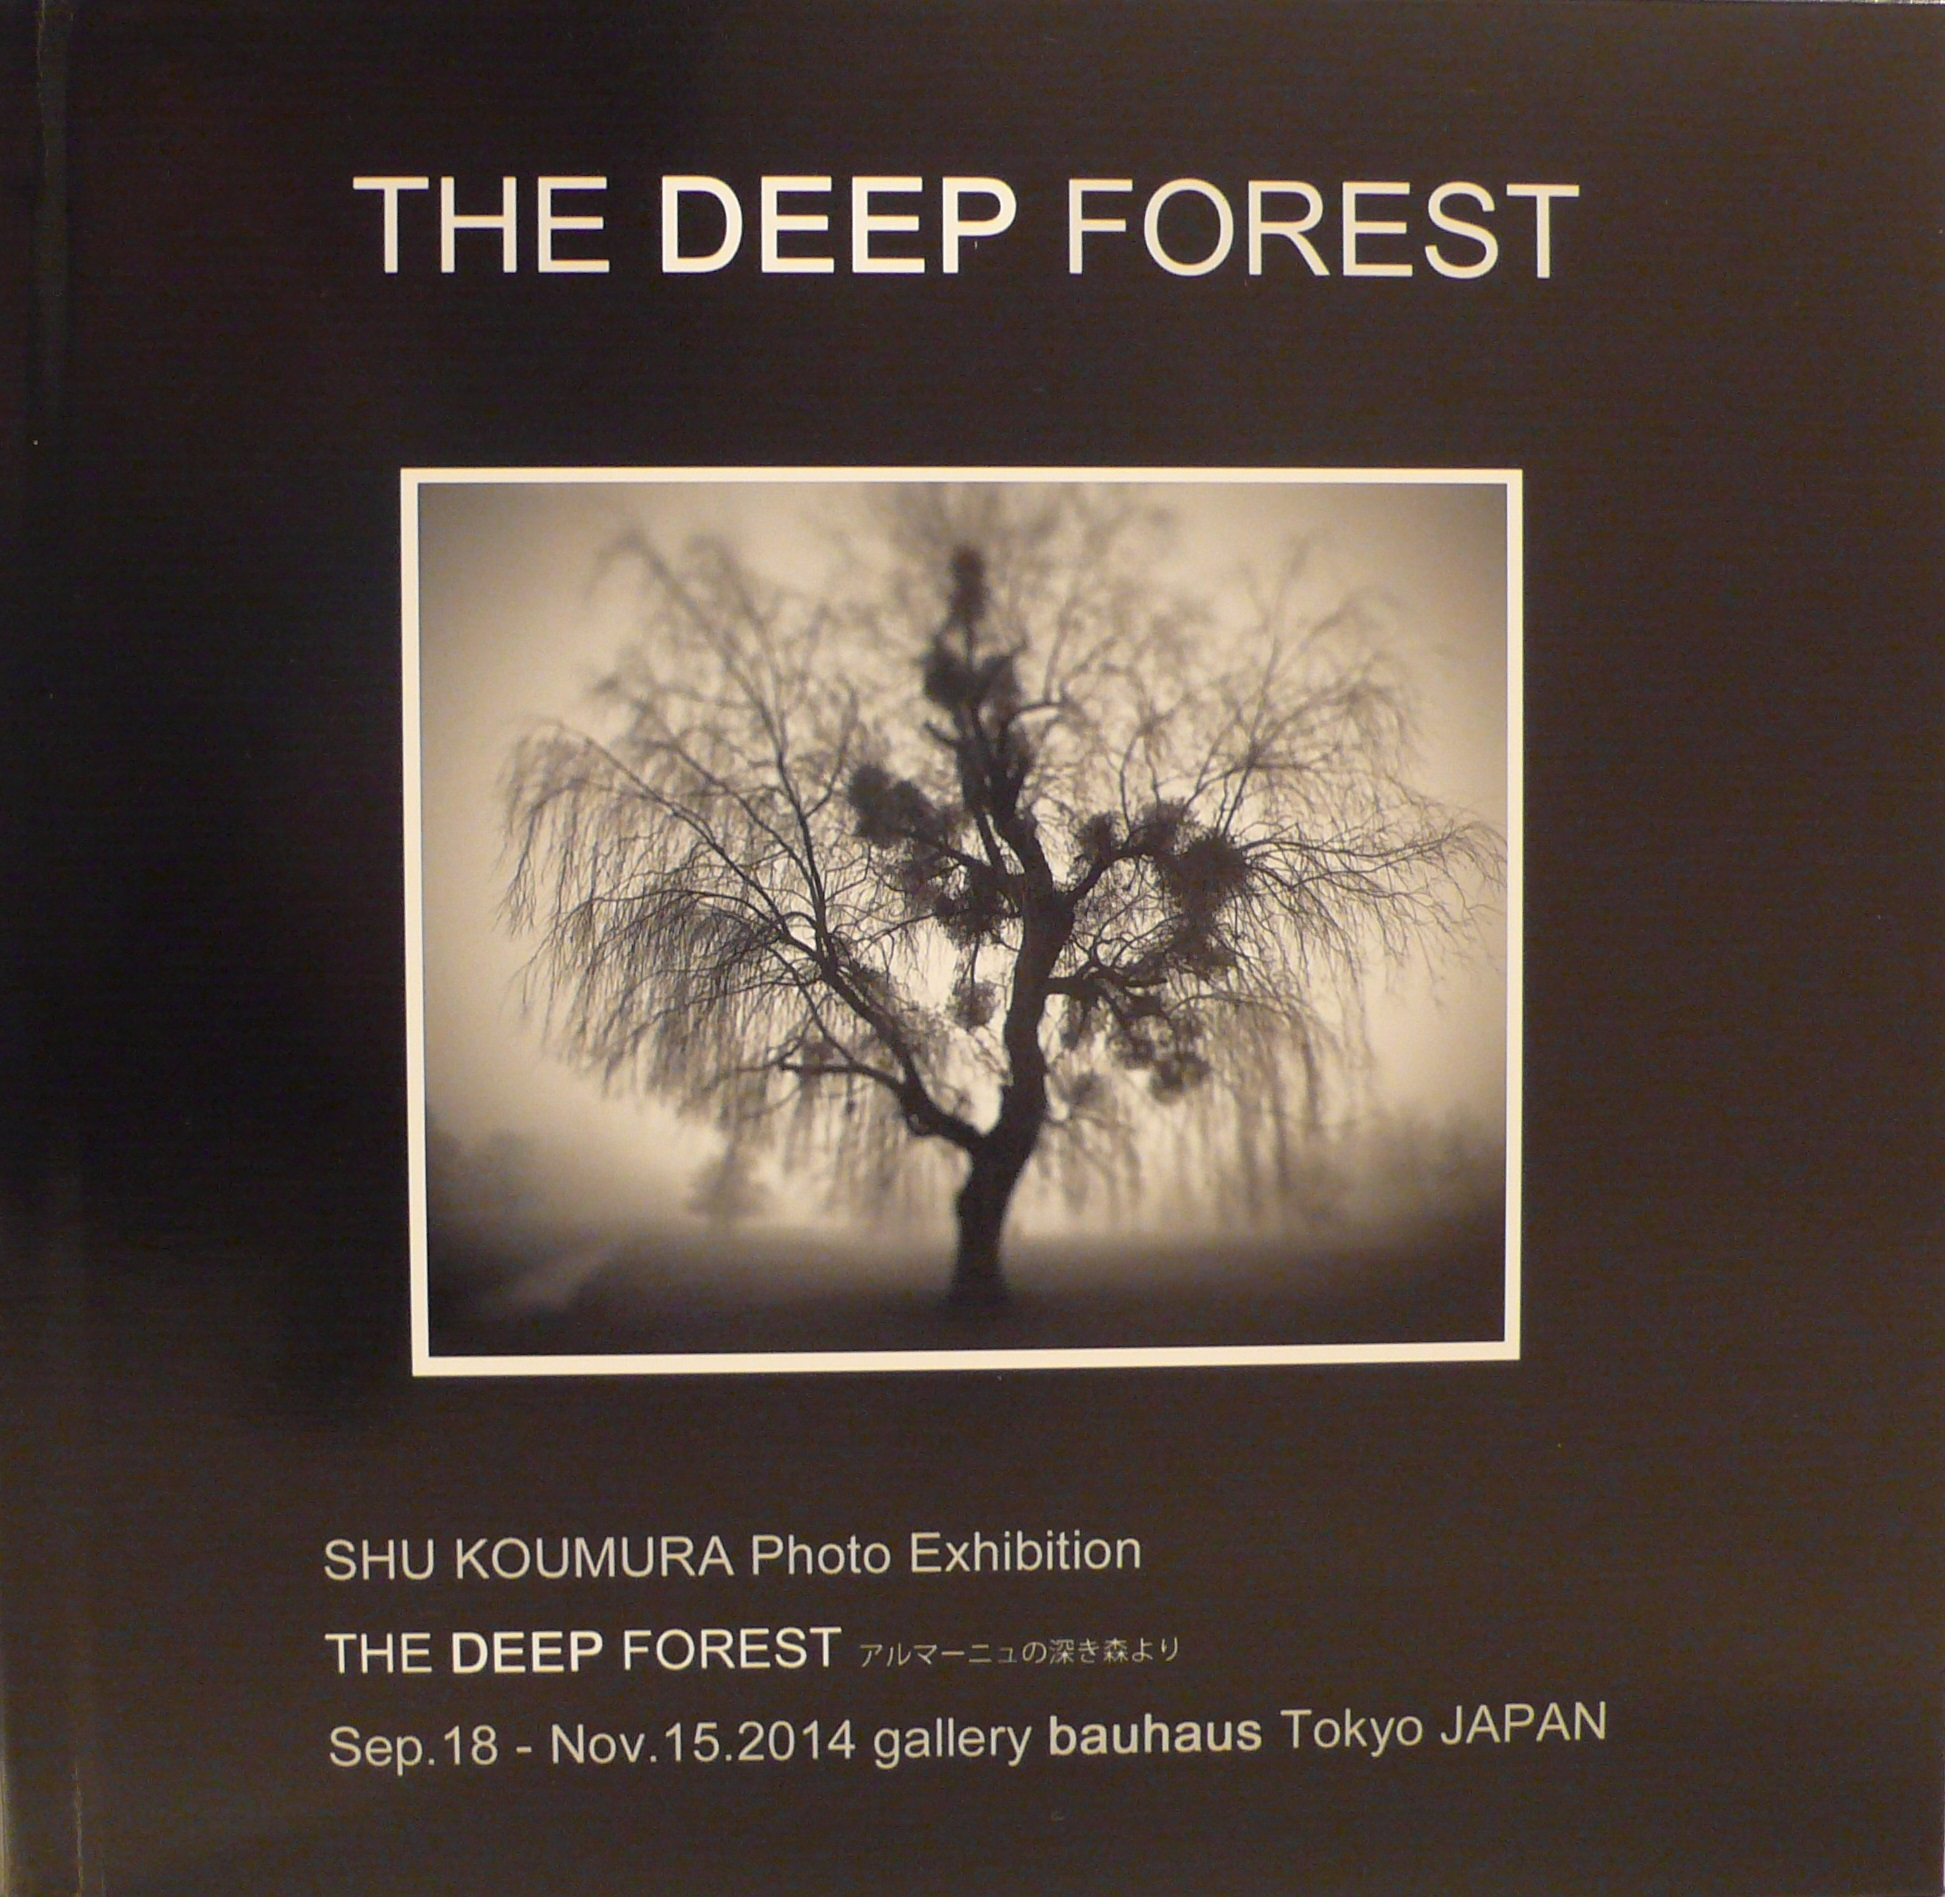 THE DEEP FOREST